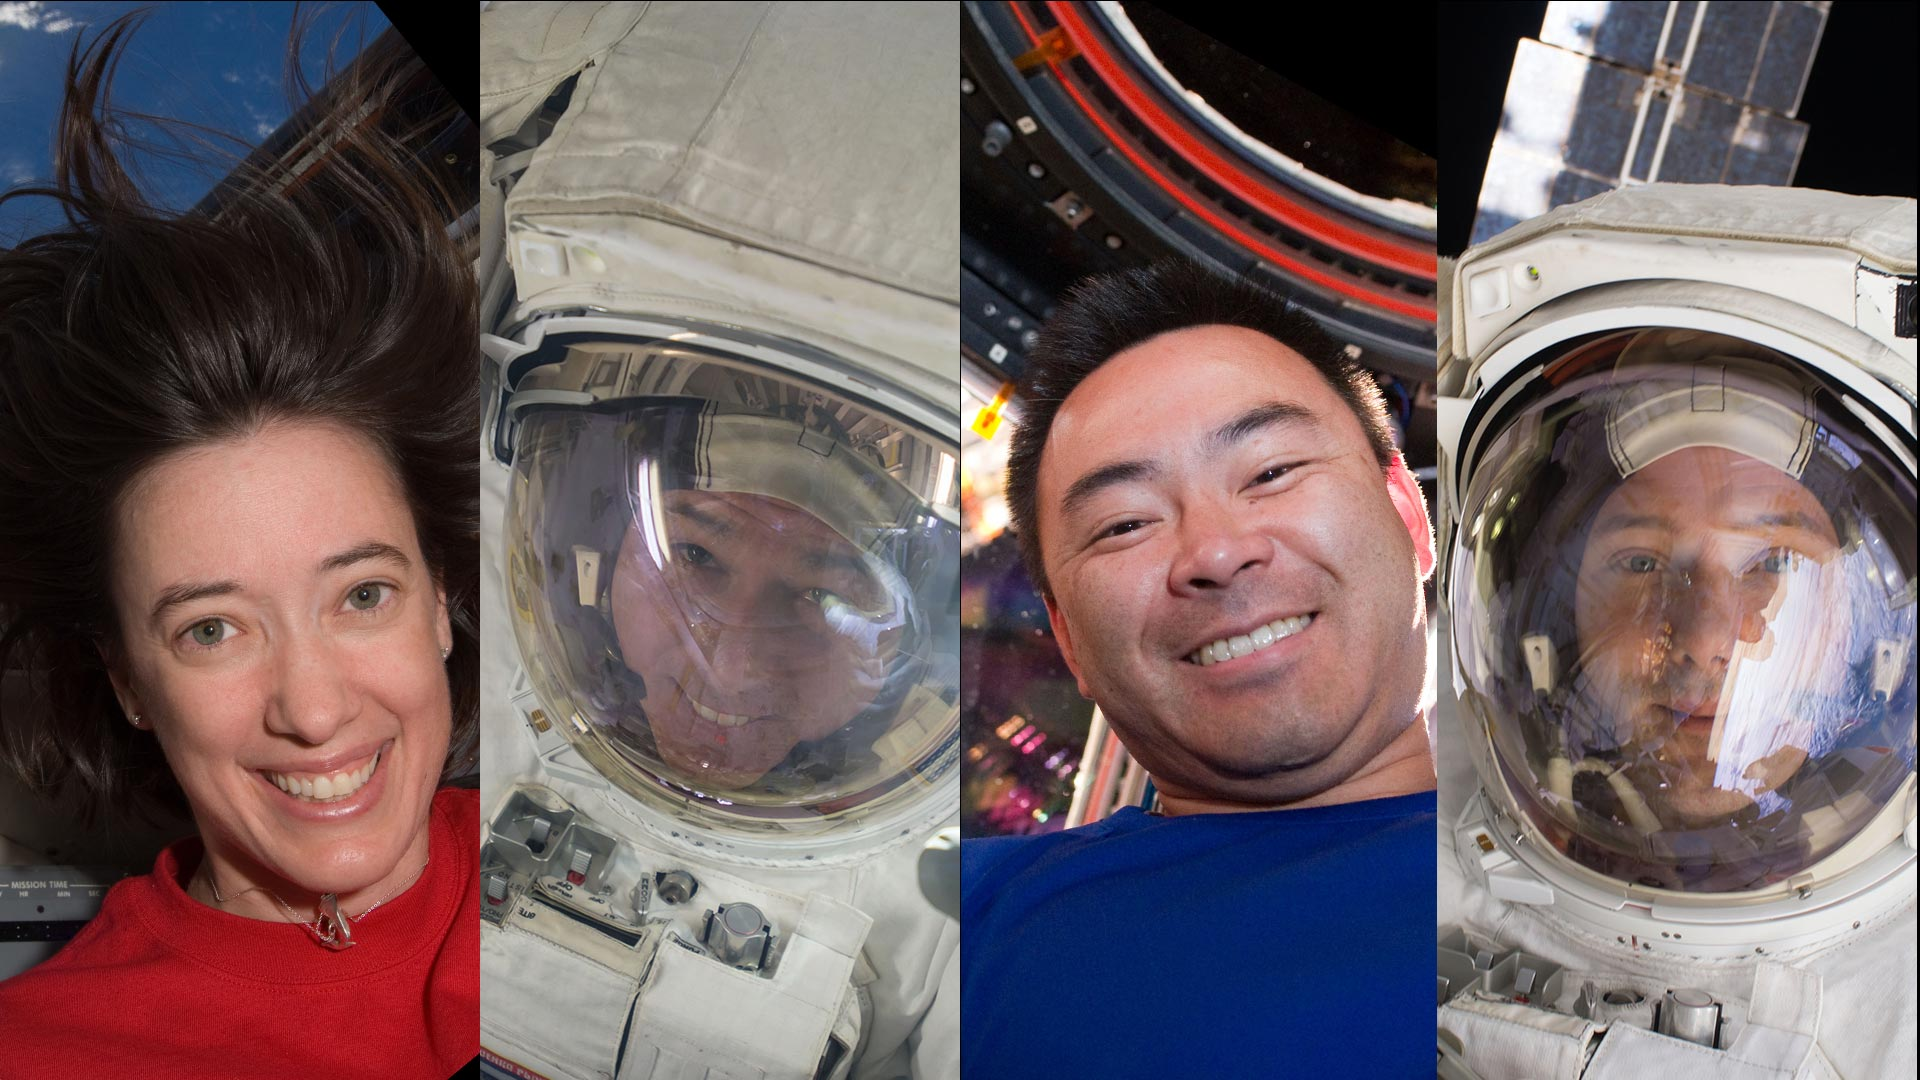 Two astronauts are preparing to return Earth aboard SpaceX's Crew Dragon spaceship